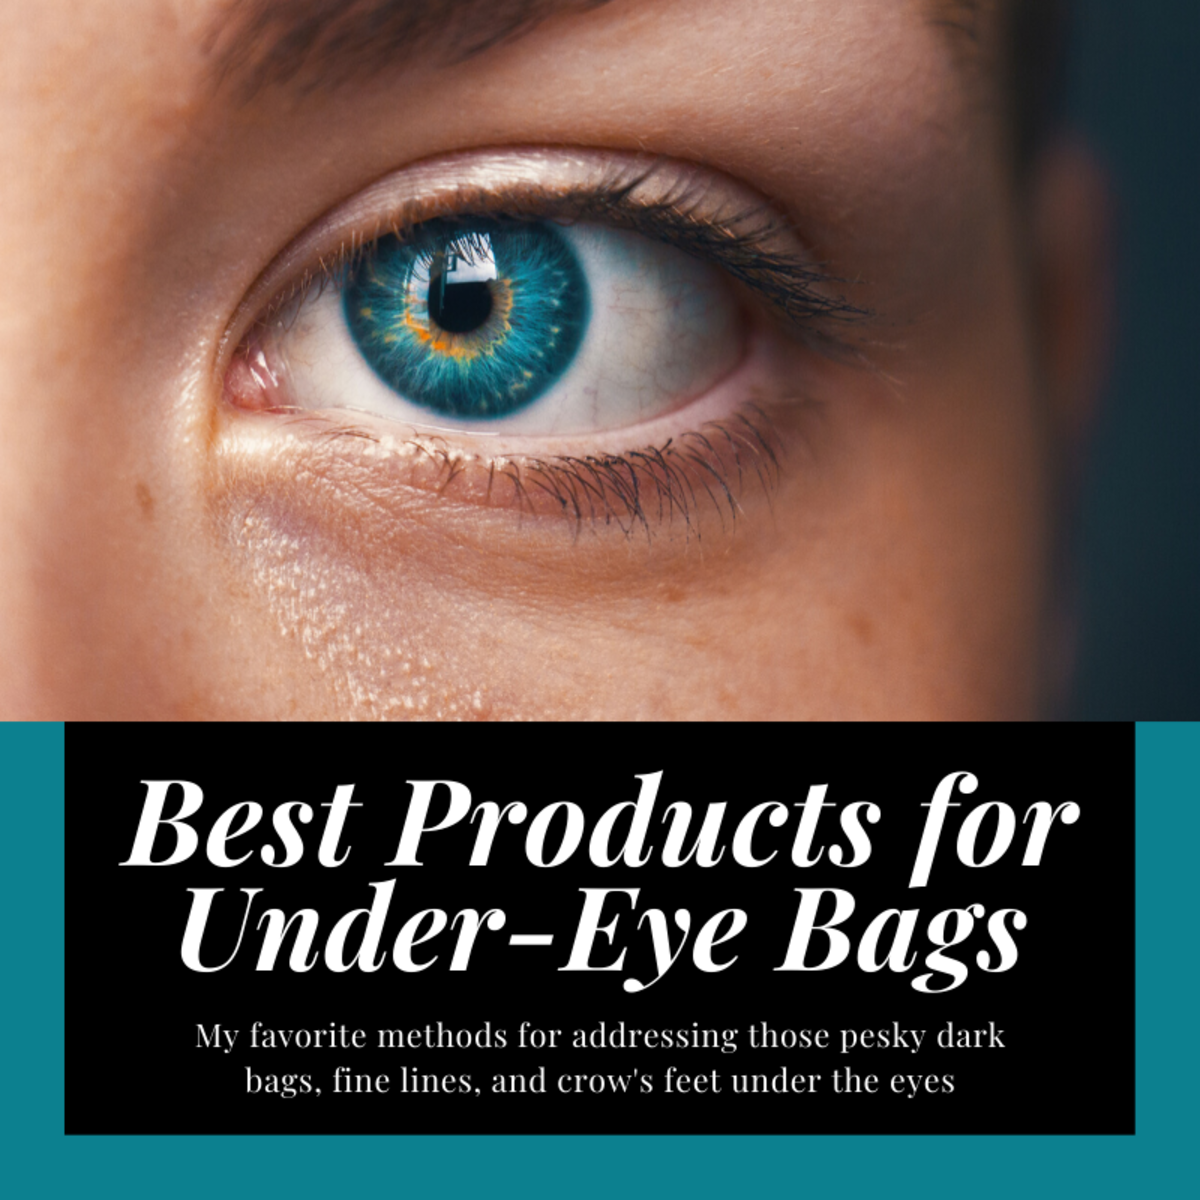 My Favorite Products for Busting Those Under-Eye Bags